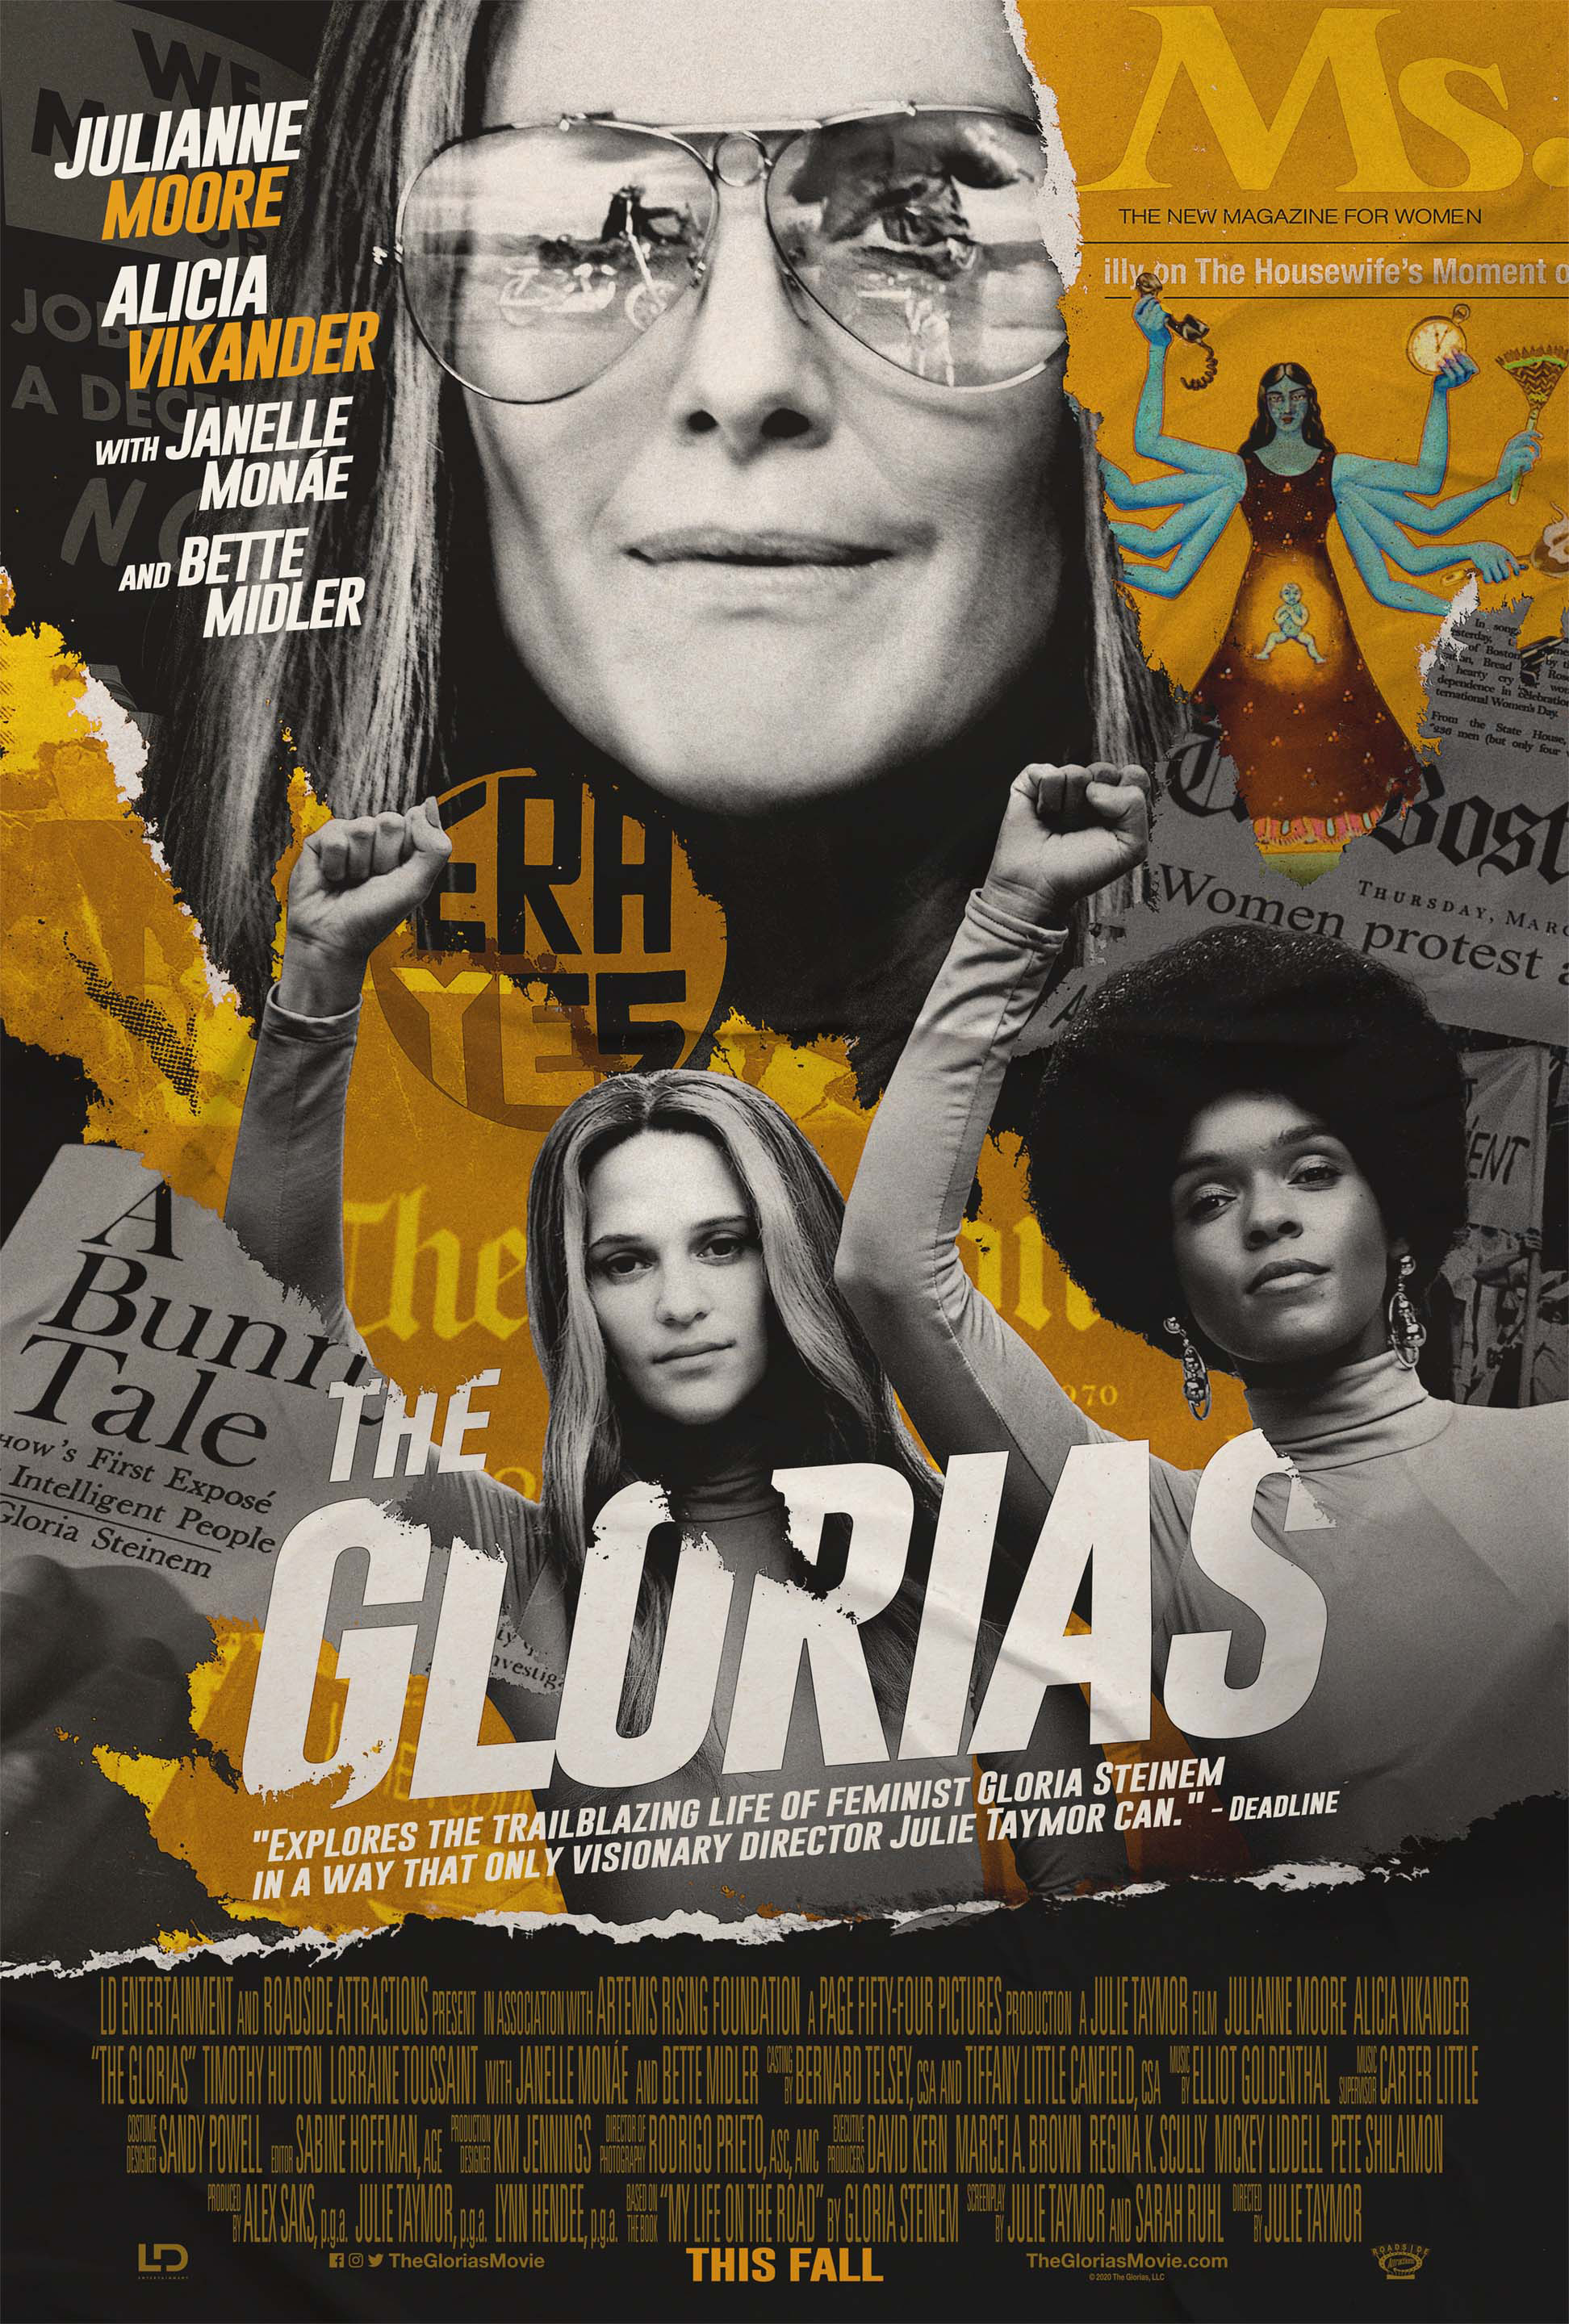 Promotional poster for THE GLORIAS